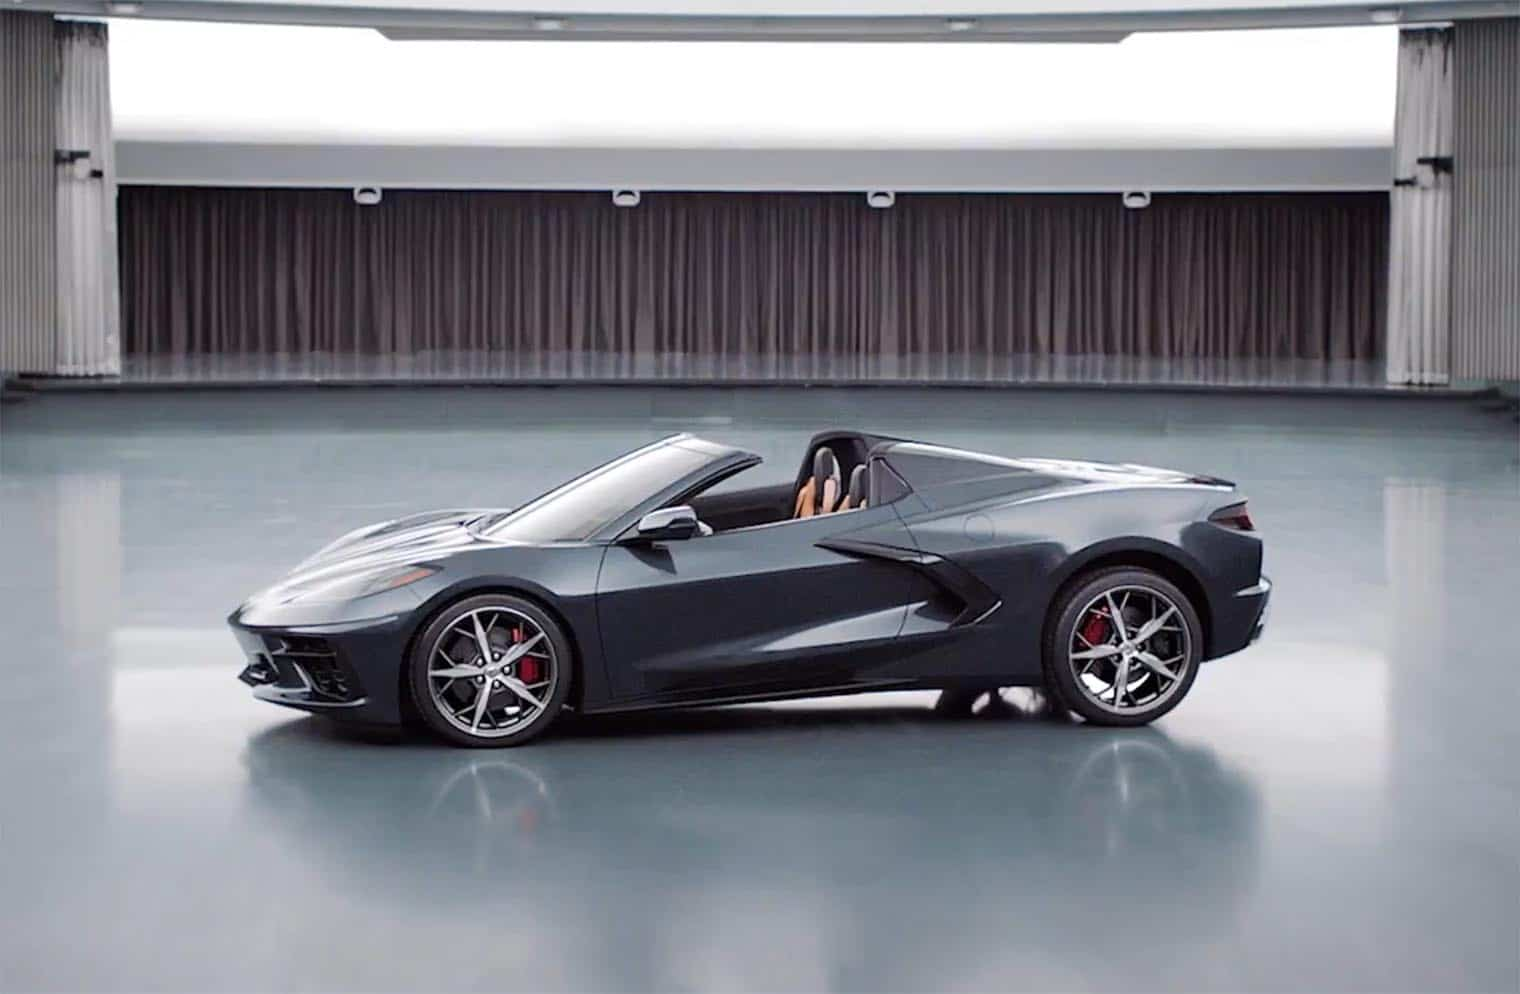 Chevy Offers Sneak Peek at Corvette Stingray Convertible, C8 R Racer